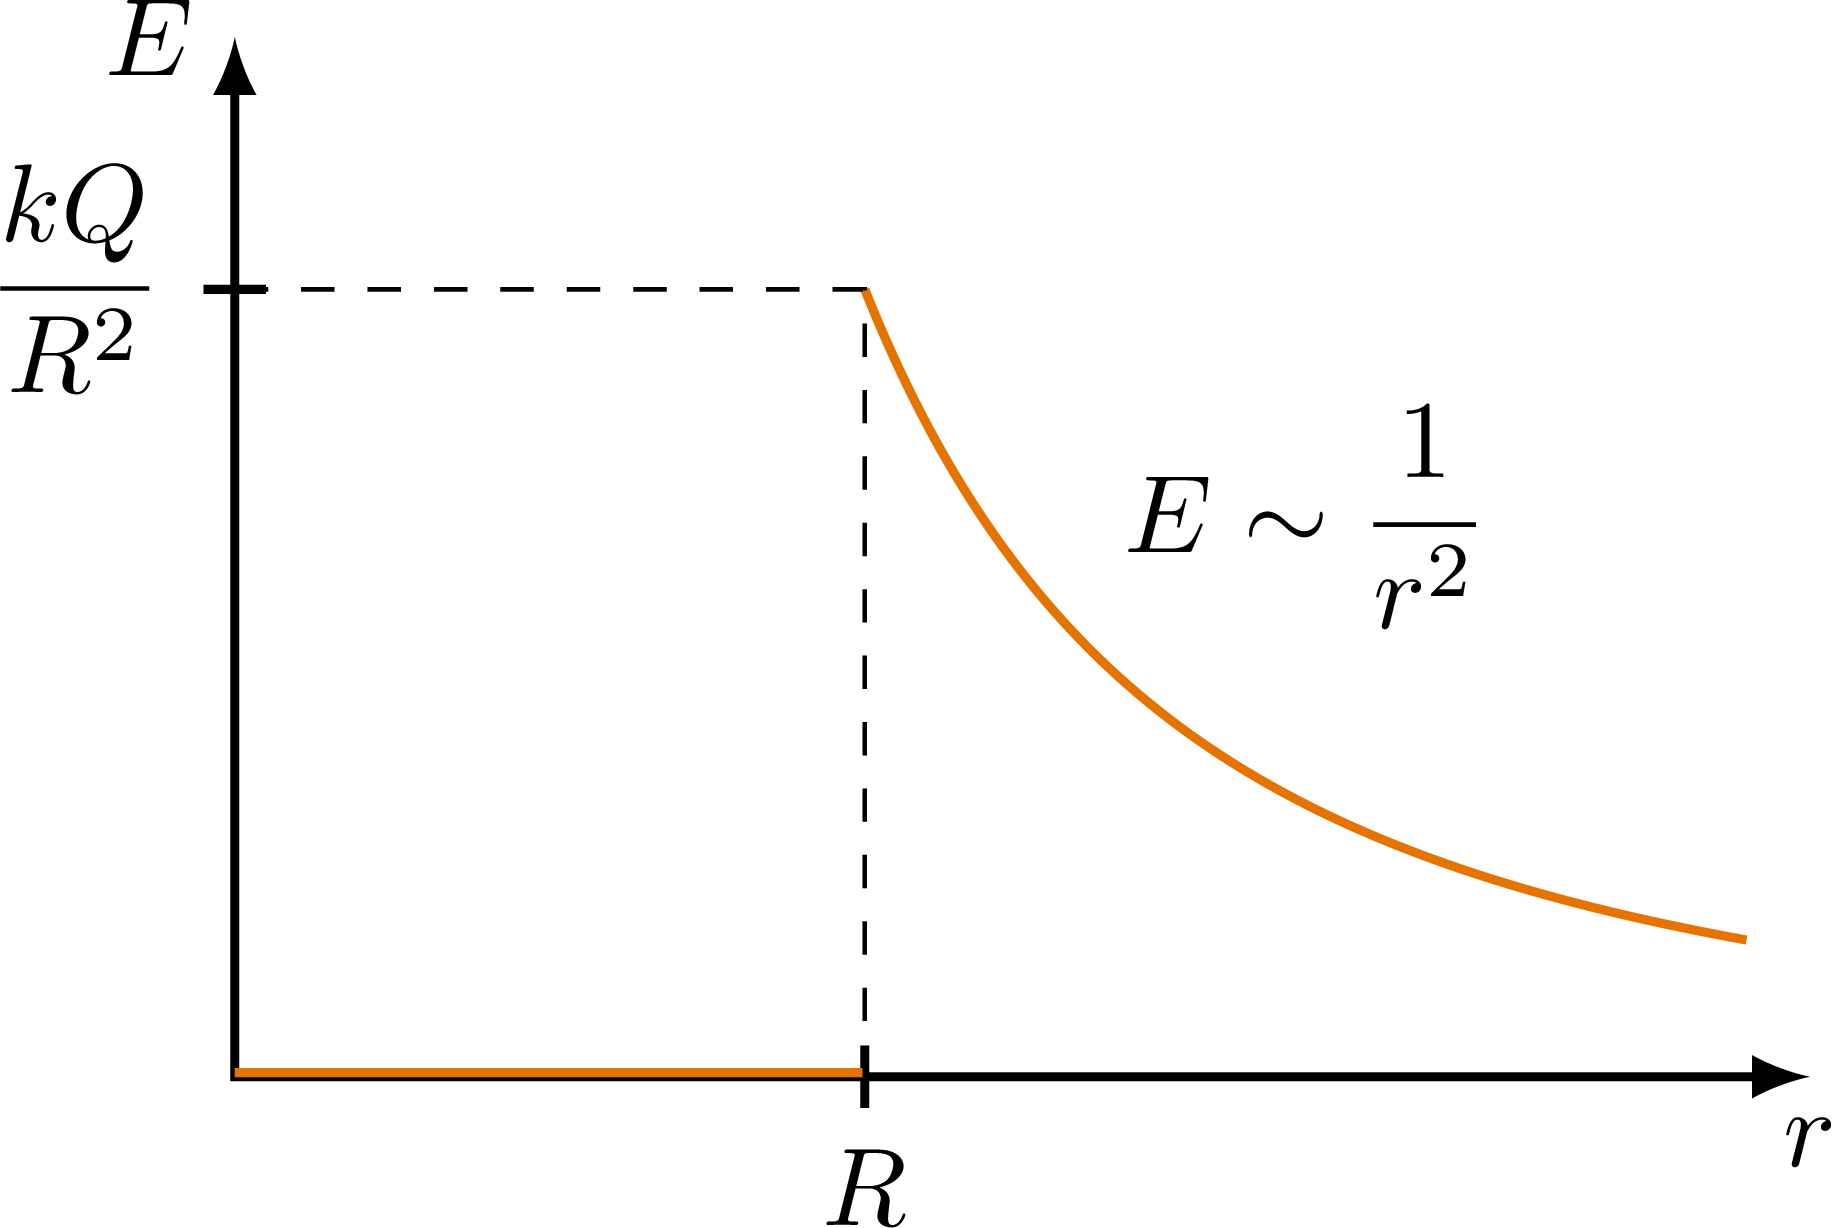 electric_field_plots-005.png